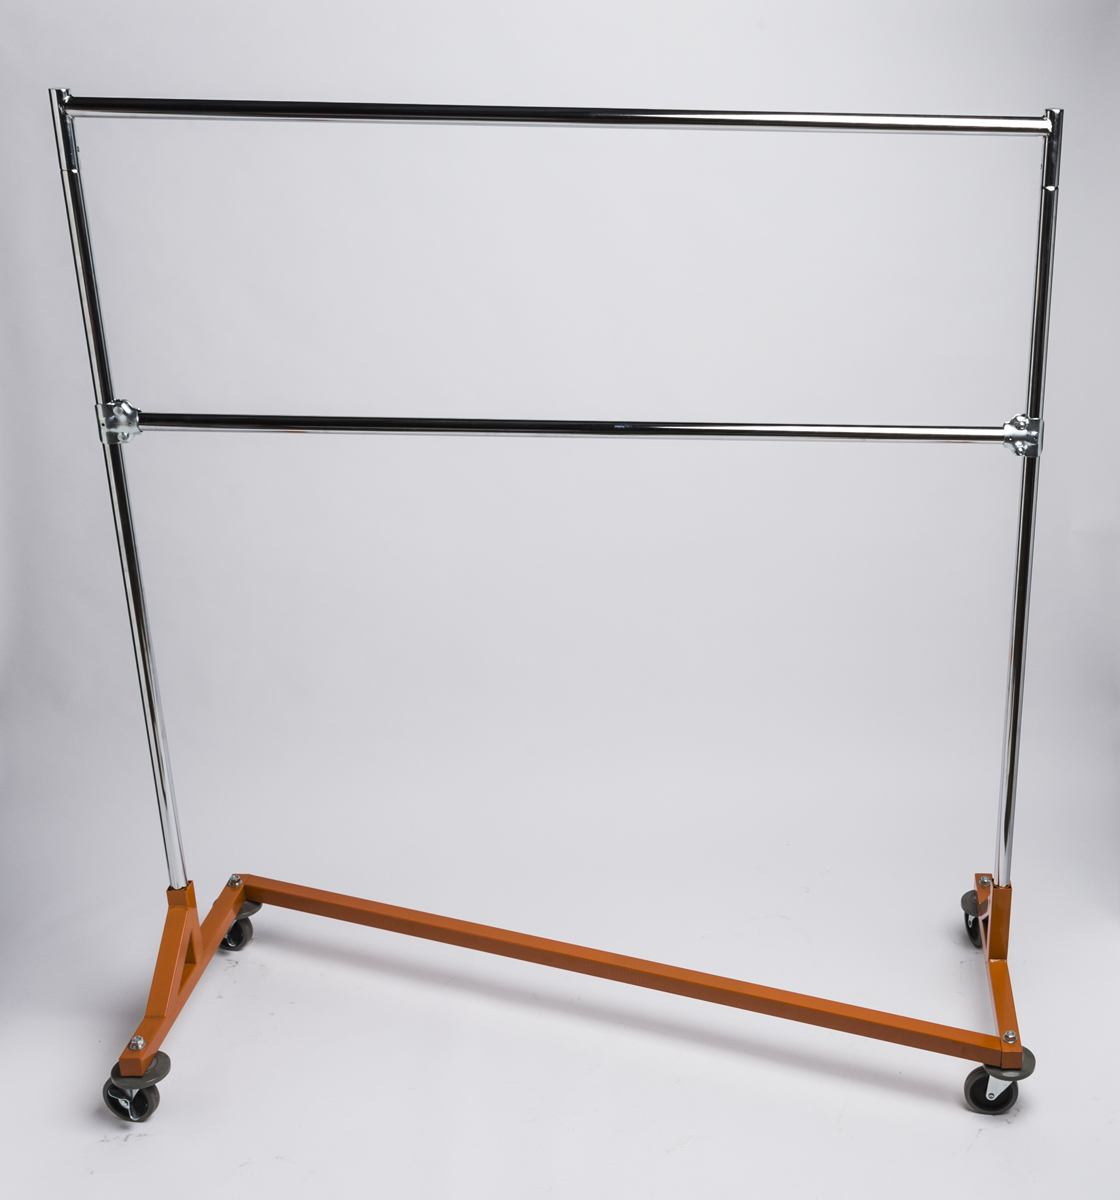 Z Rack With A Heavy Duty Orange Base A Amp B Store Fixtures